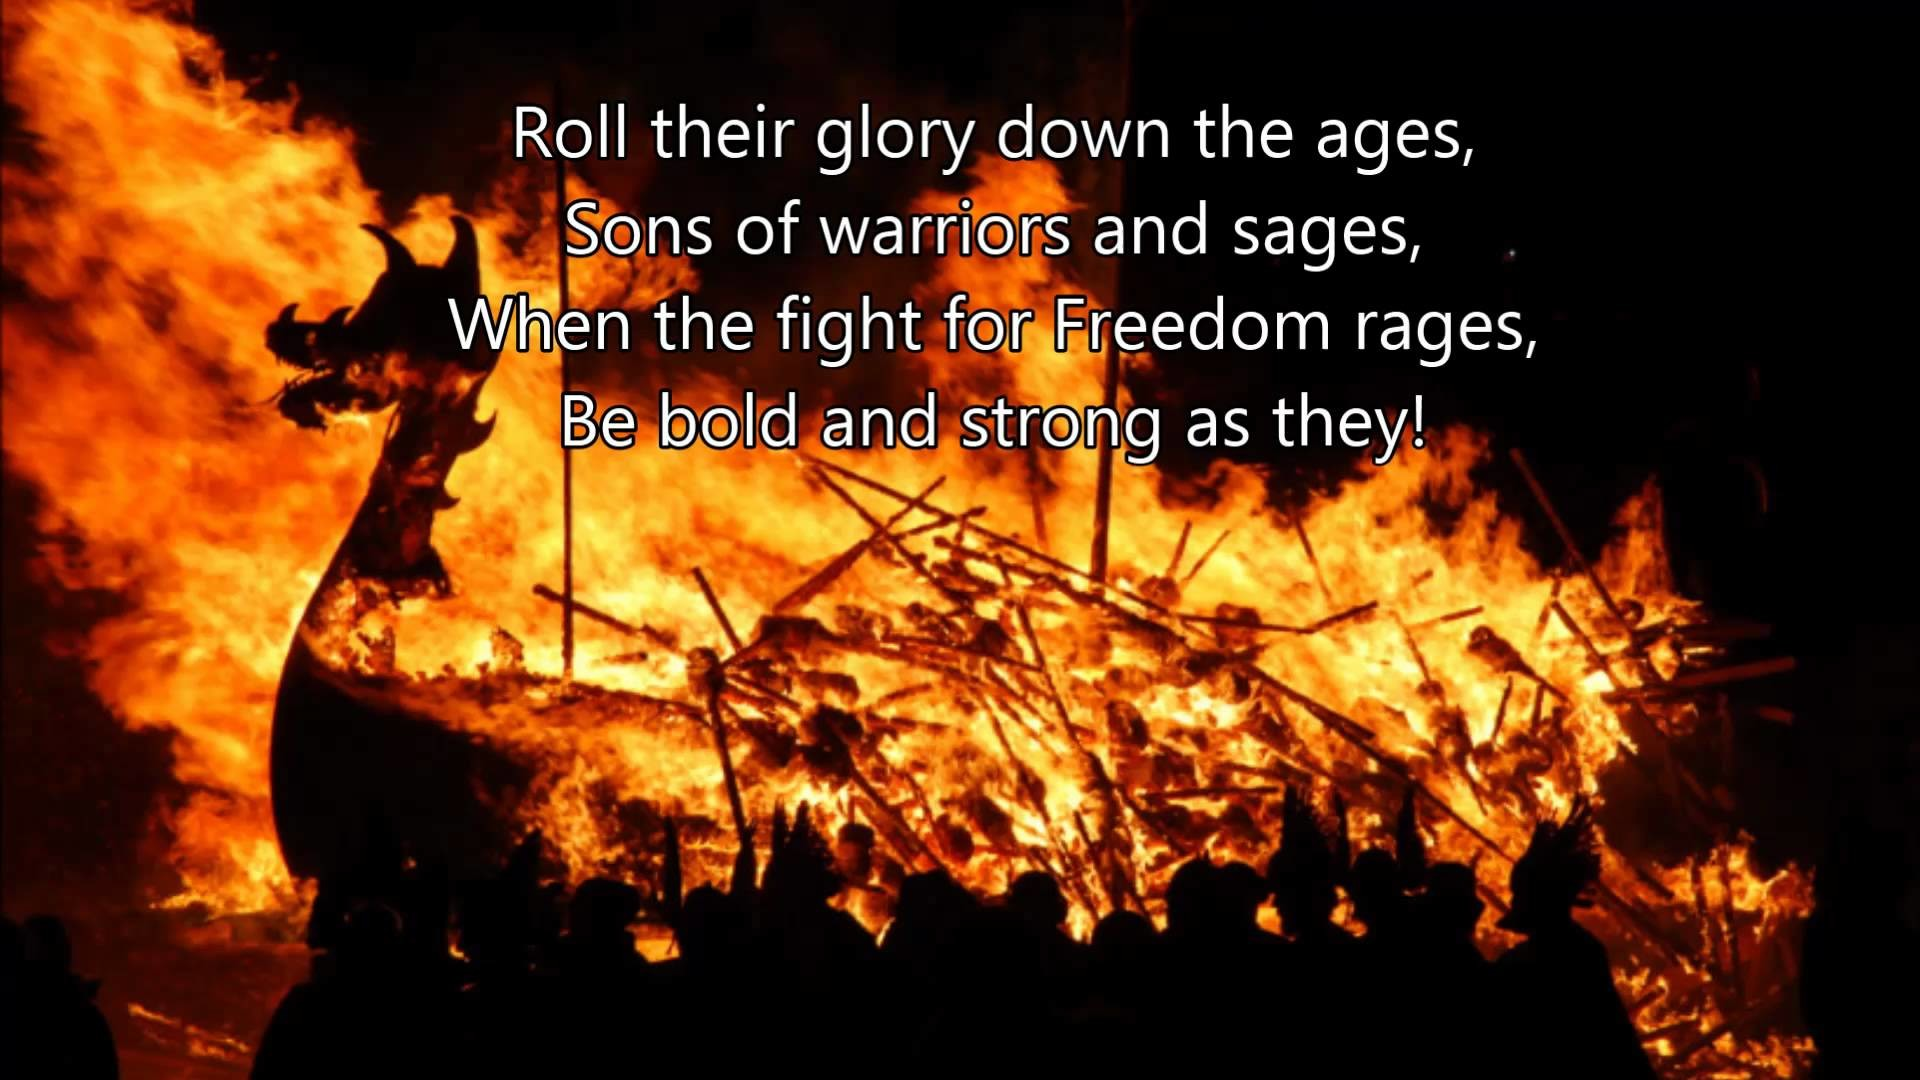 Hail our great Warriors, for they are not dead, but only sleeping. Soon